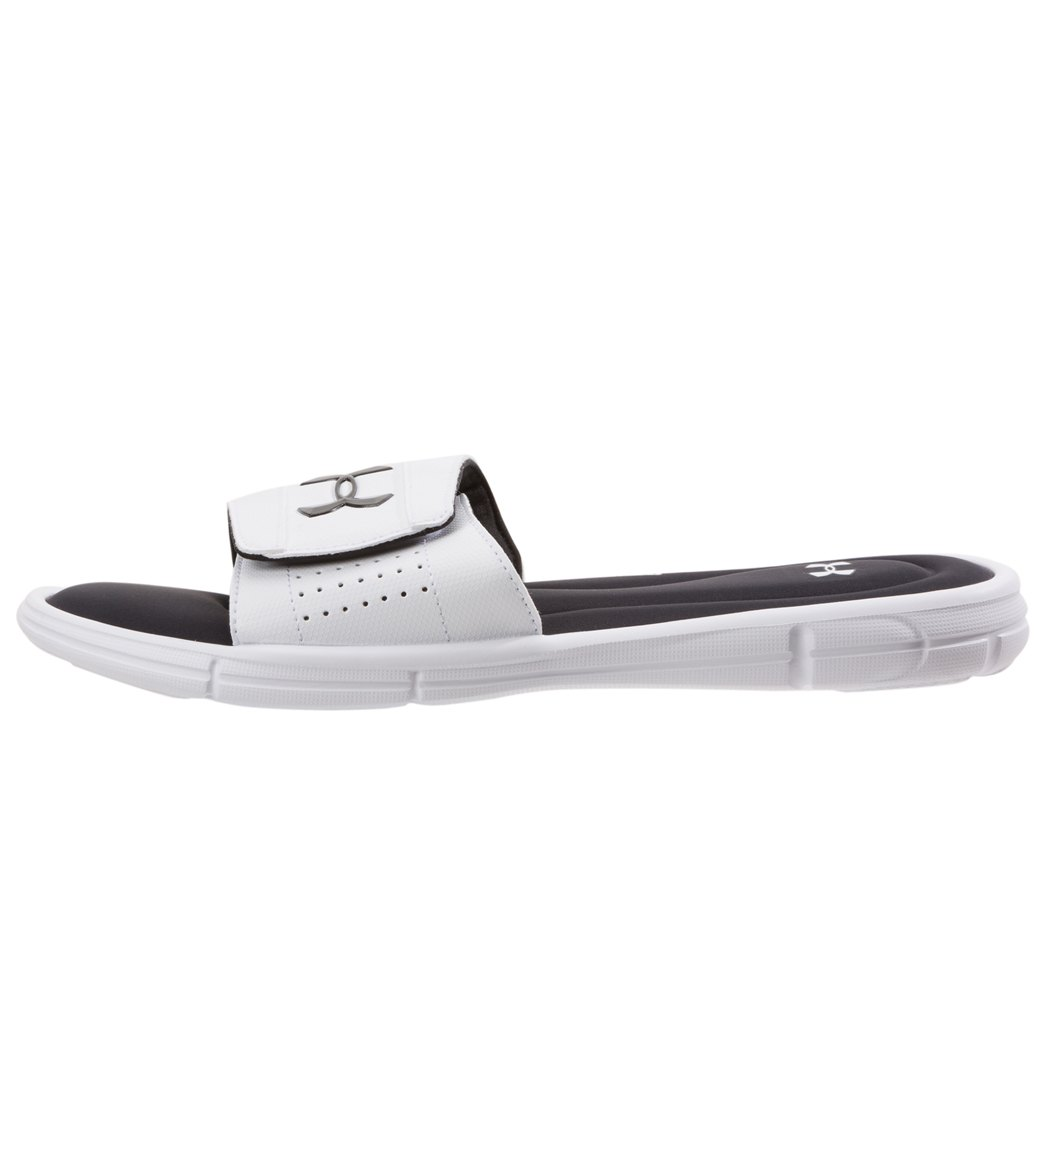 9301689c7072 Under Armour Men s Ignite V Slide Sandal at SwimOutlet.com